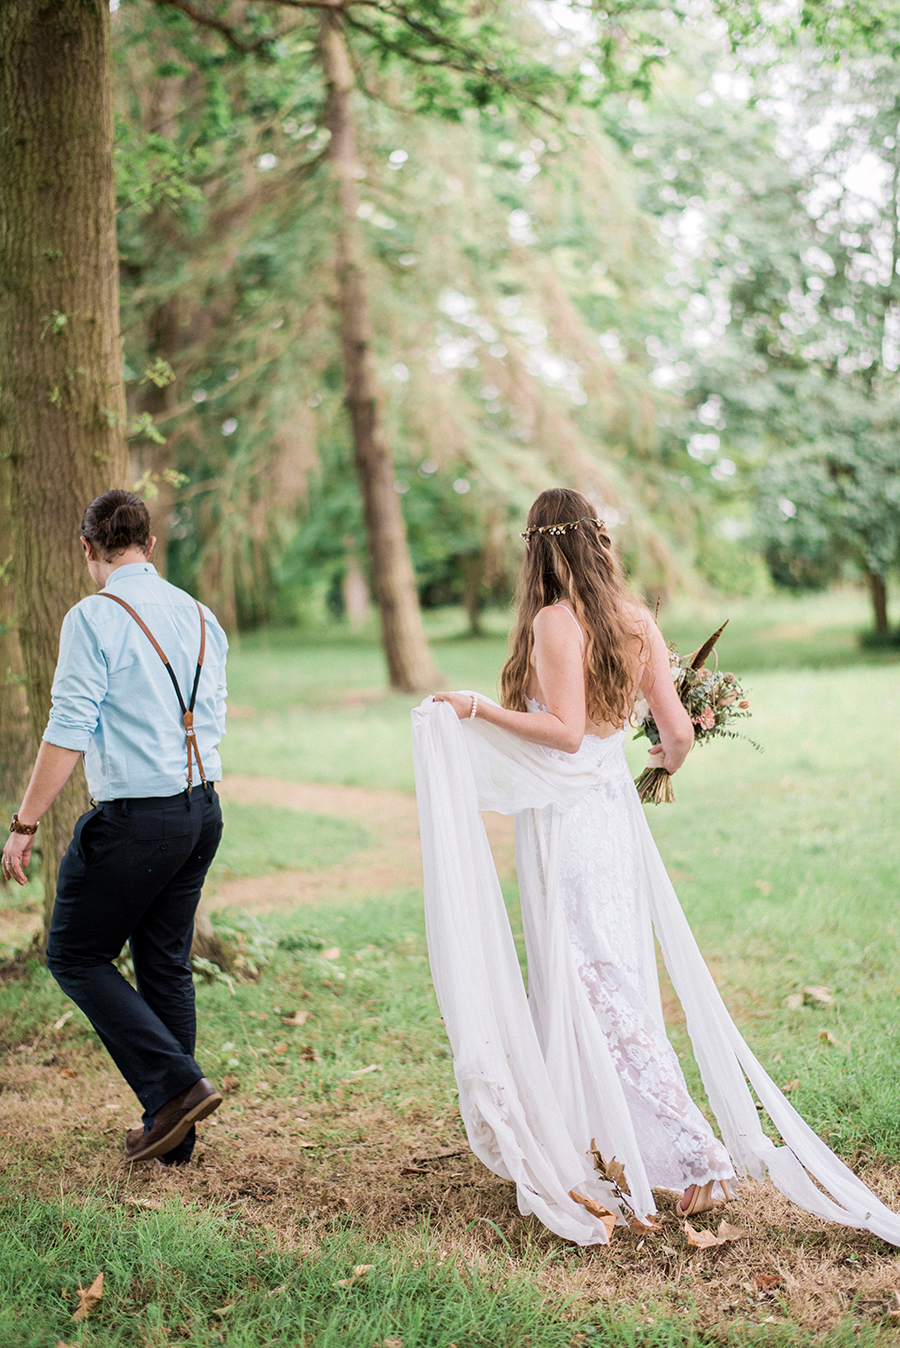 Dreamy boho wedding at Houchins Farm with images by Kathryn Hopkins Photography (40)